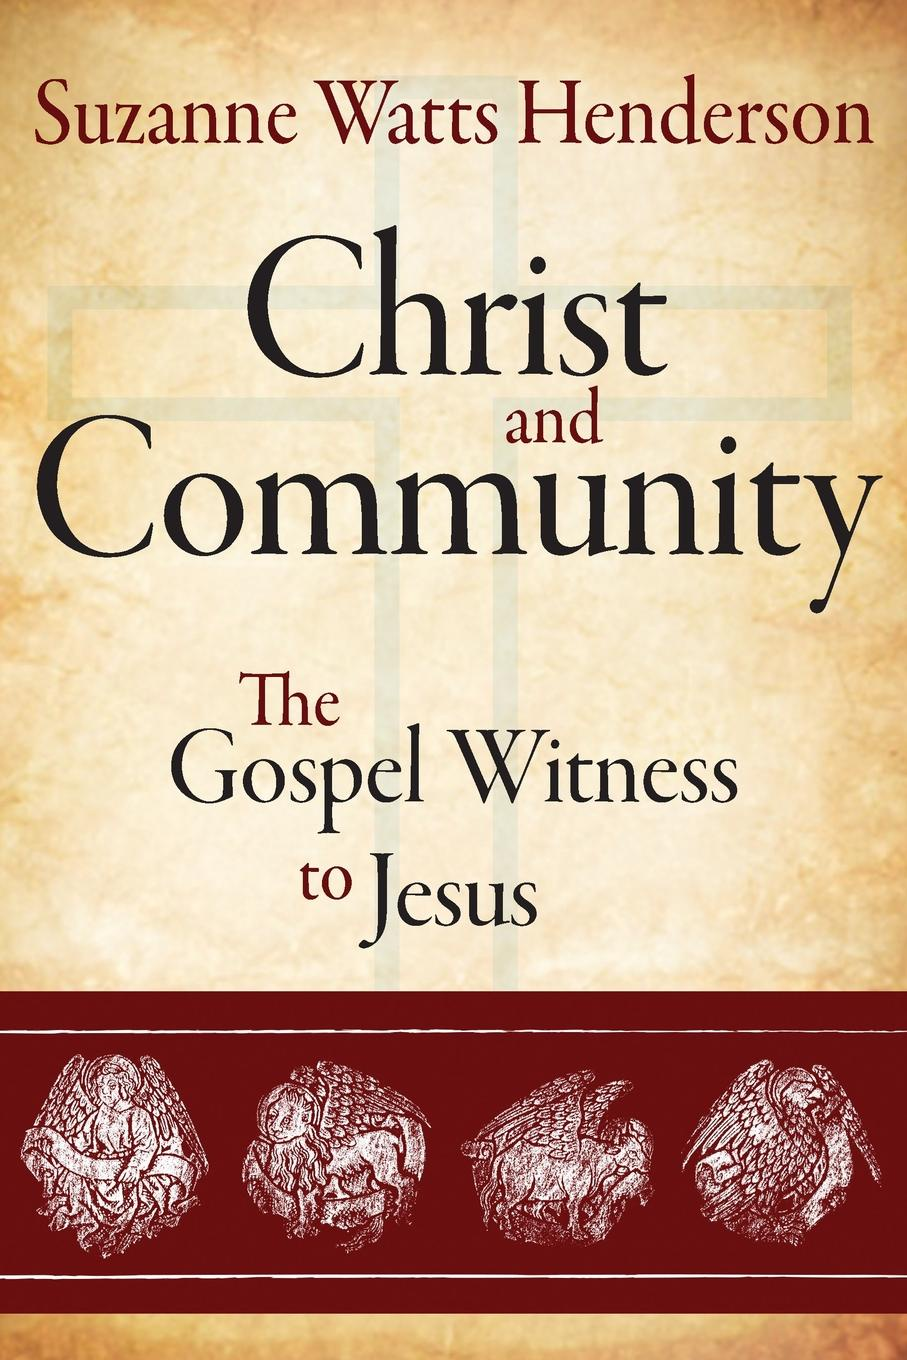 цена Suzanne Watts Henderson Christ and Community. The Gospel Witness to Jesus онлайн в 2017 году